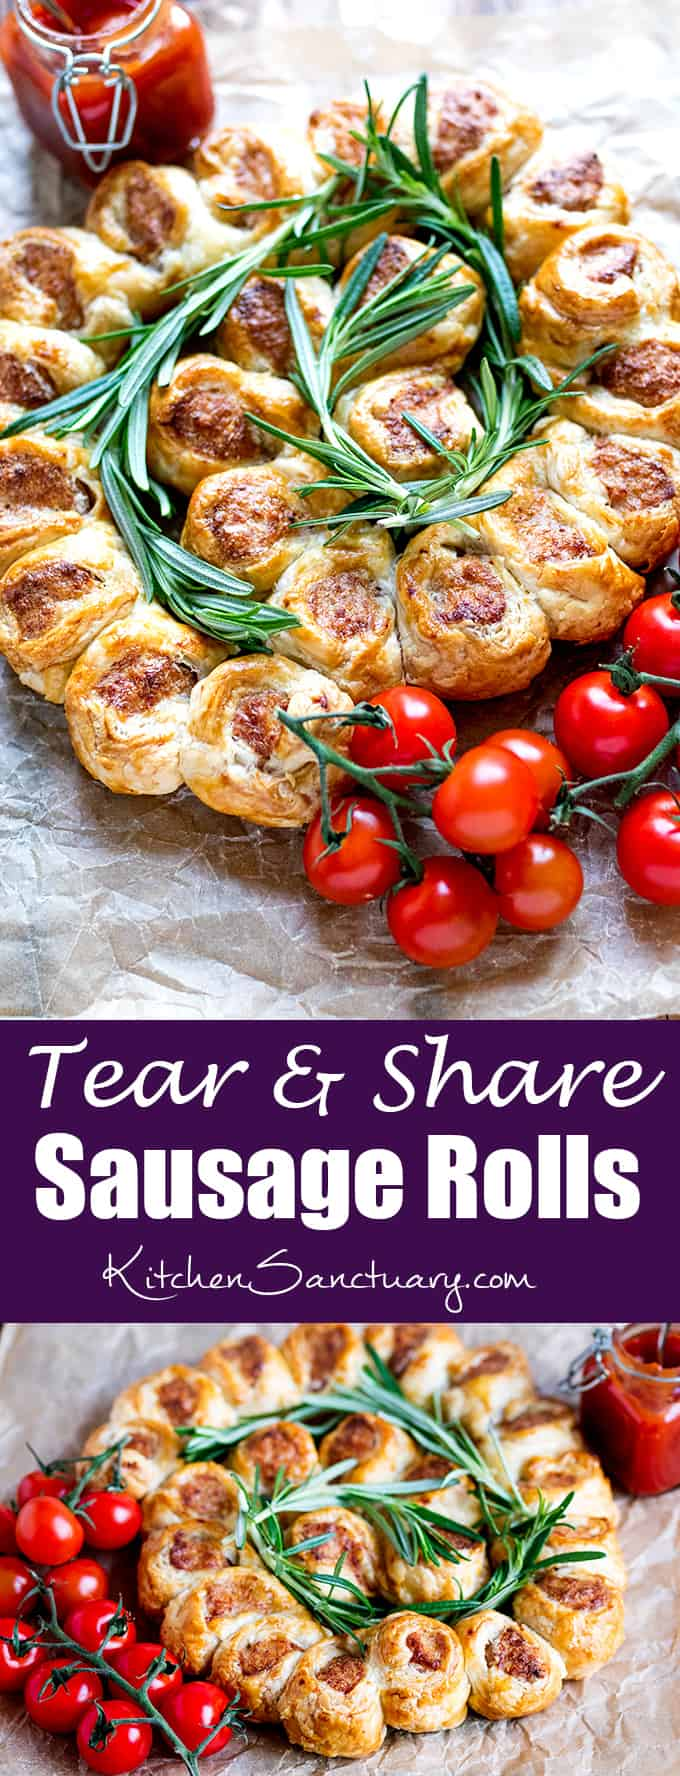 These 3 ingredient sausage rolls are so simple and quick to make. Perfect for parties, BBQs, buffets and picnics.